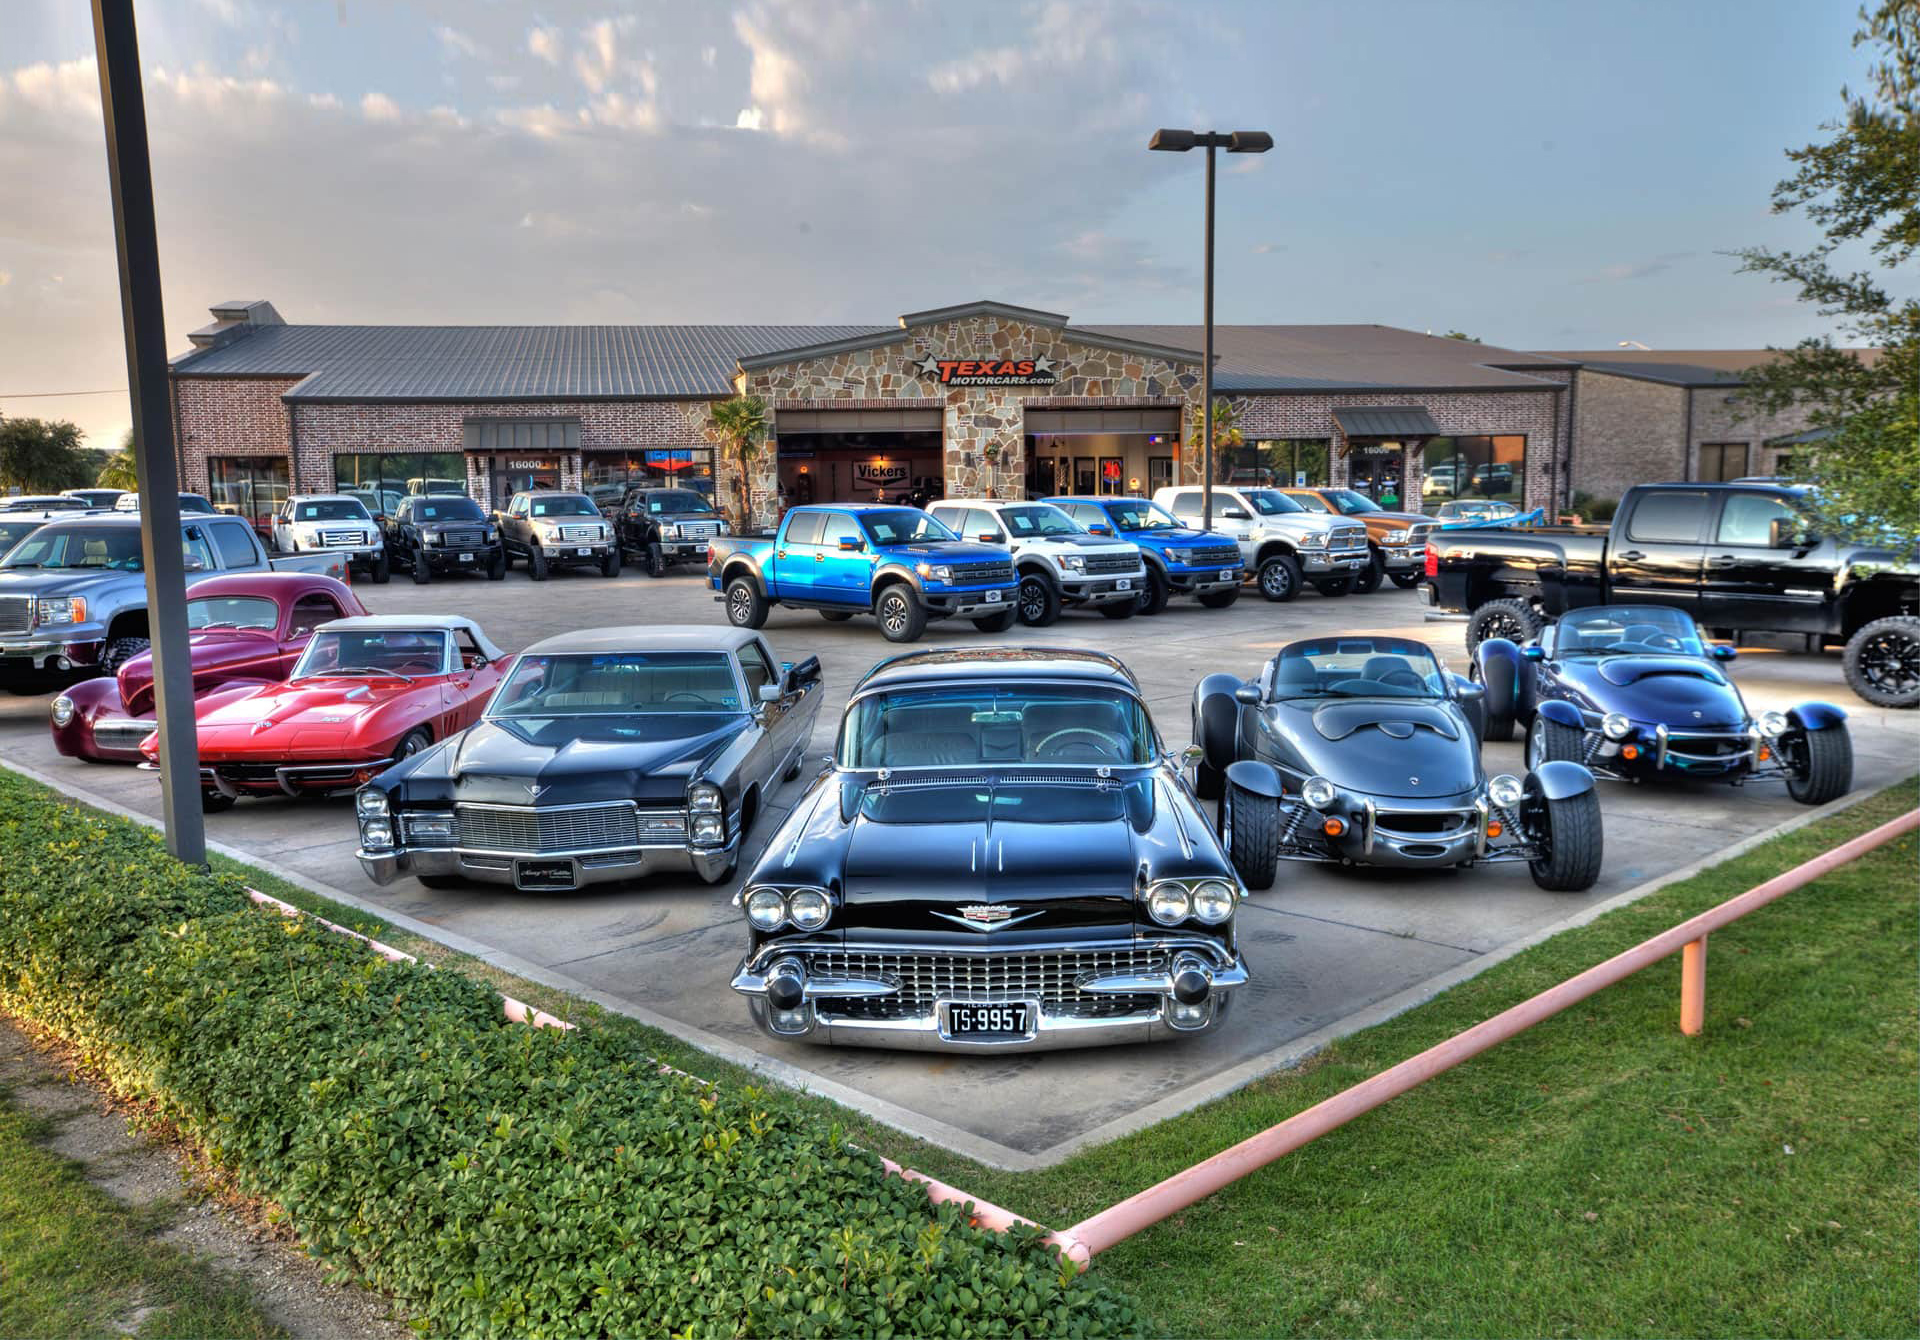 Used Car Dealership Dallas | Addison Used Cars | Texas Motorcars